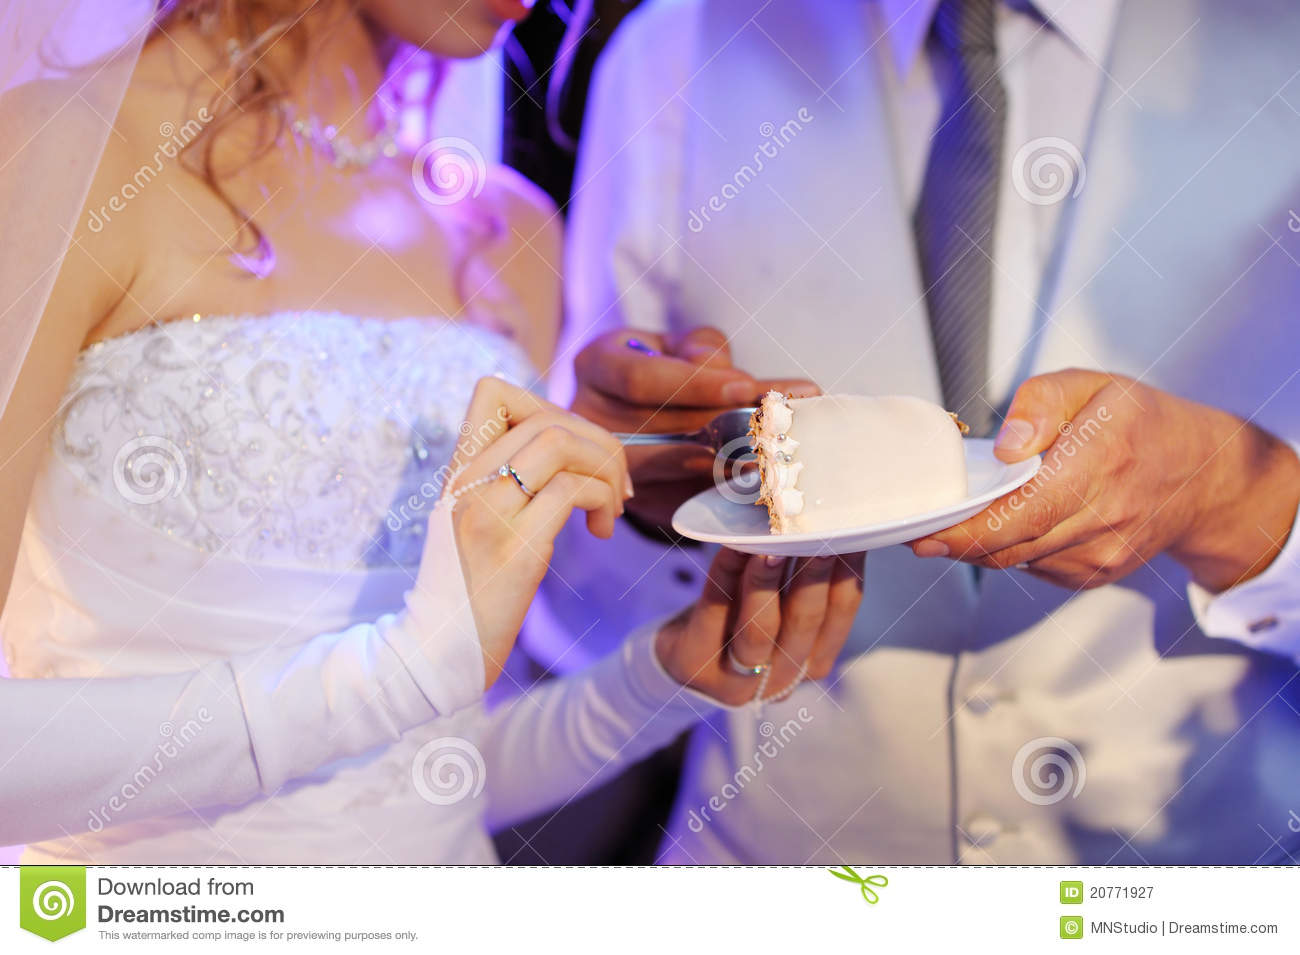 dream interpretation eating wedding cake a and a groom are a wedding cake royalty free 13730